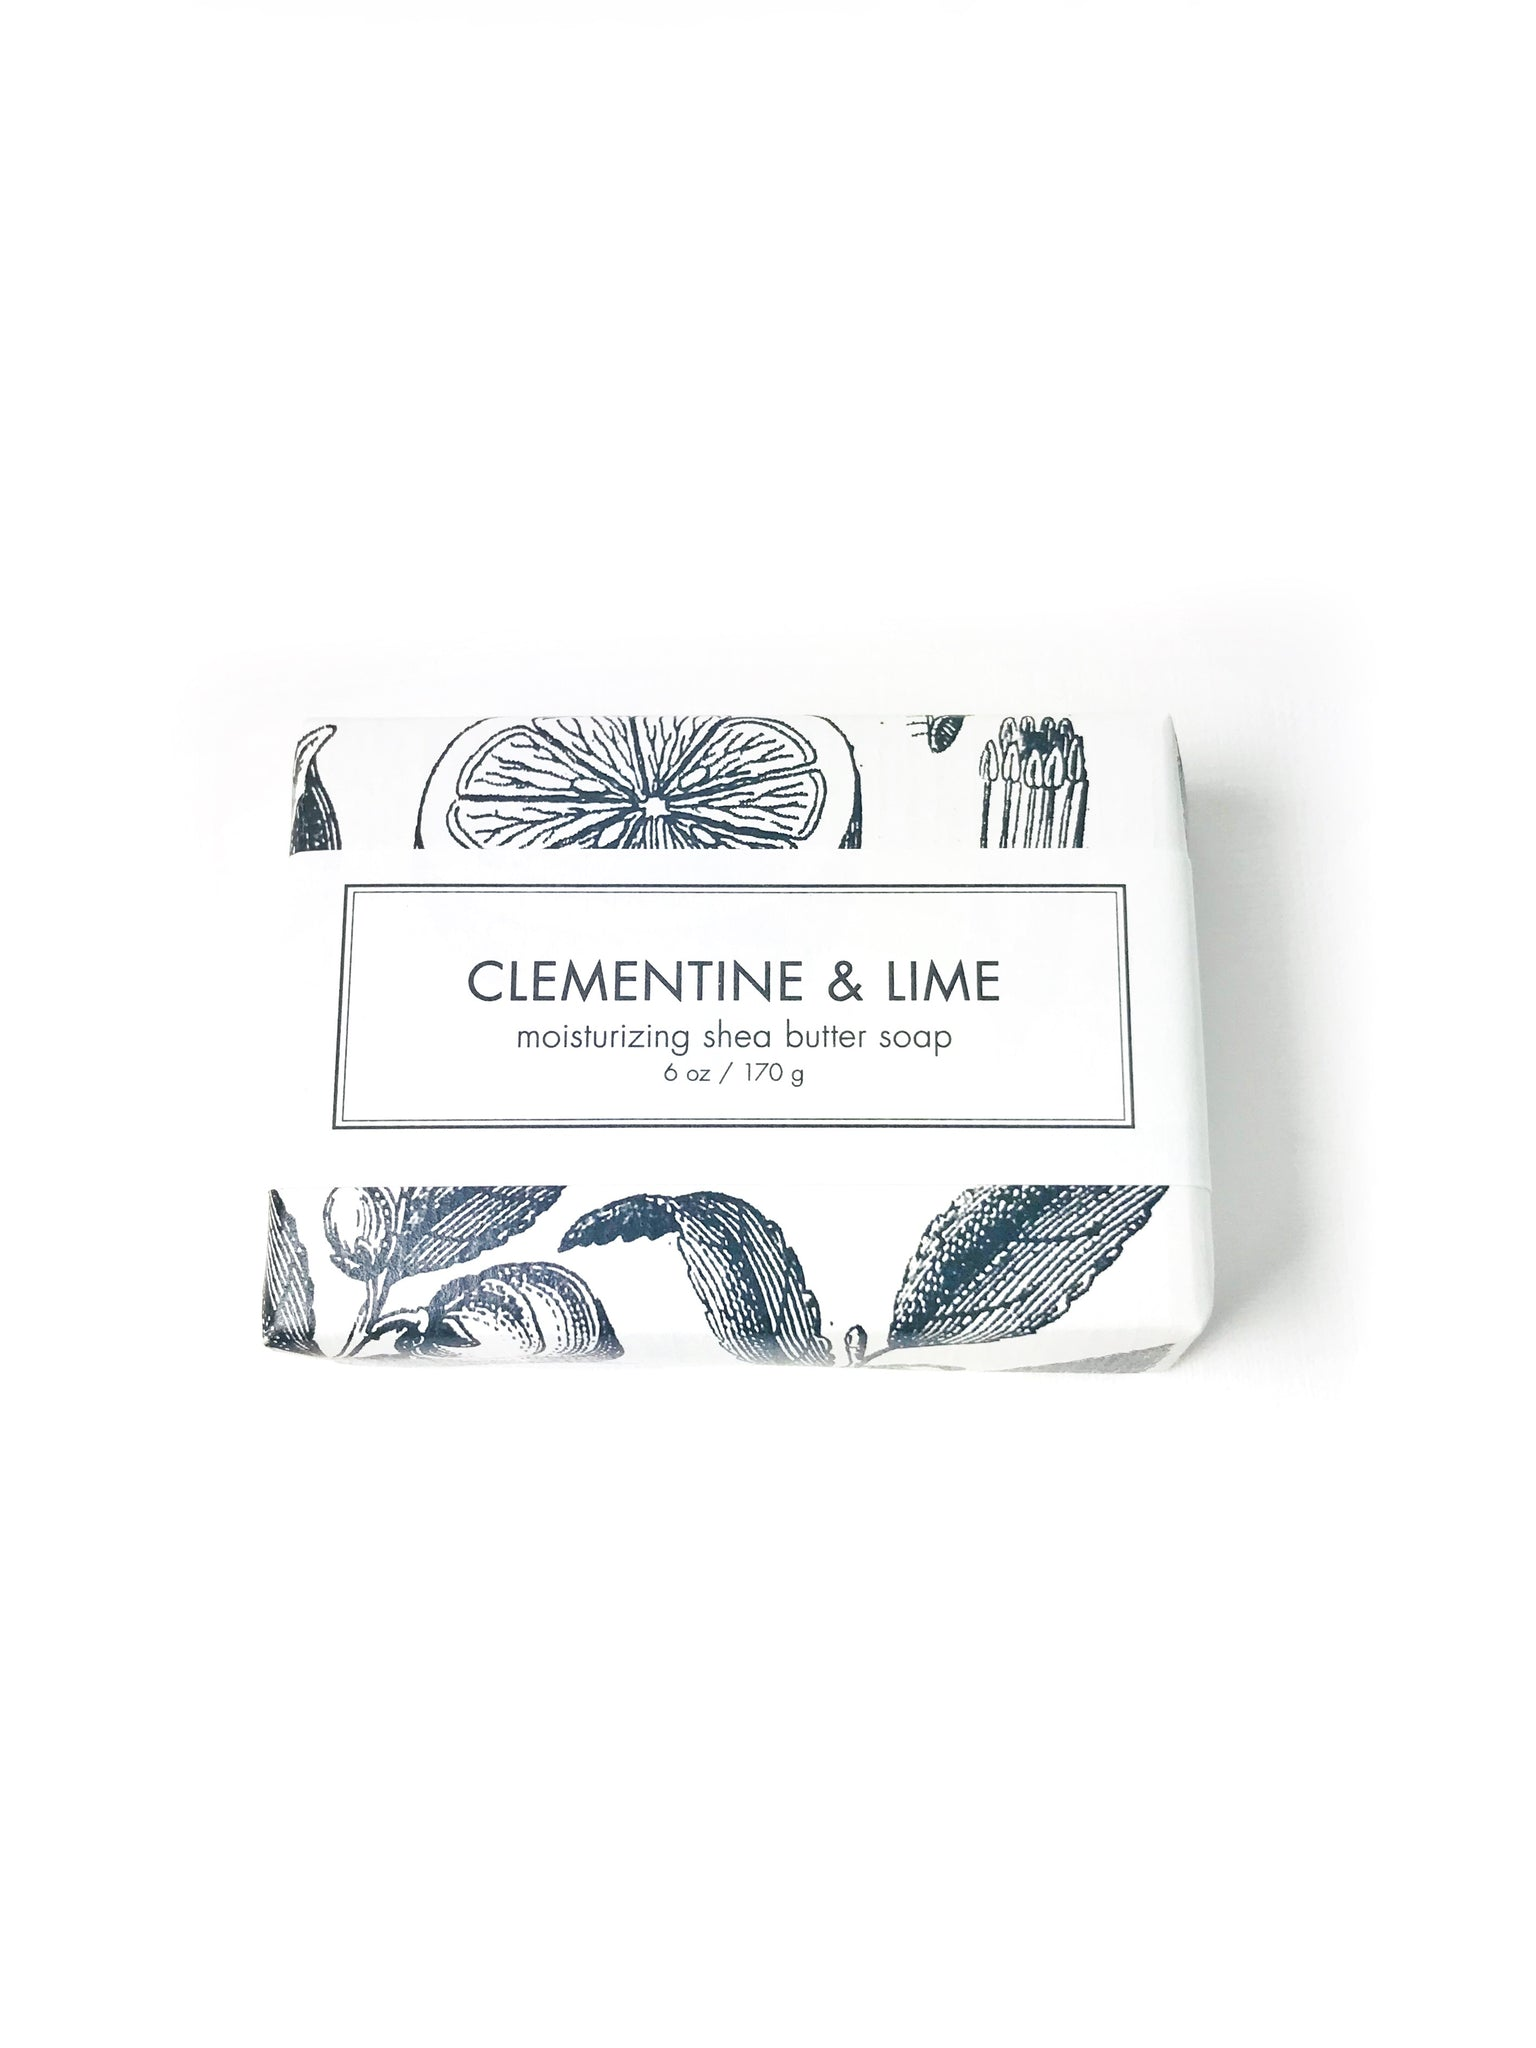 Moisturizing Shea Butter Soap- Clementine & Lime